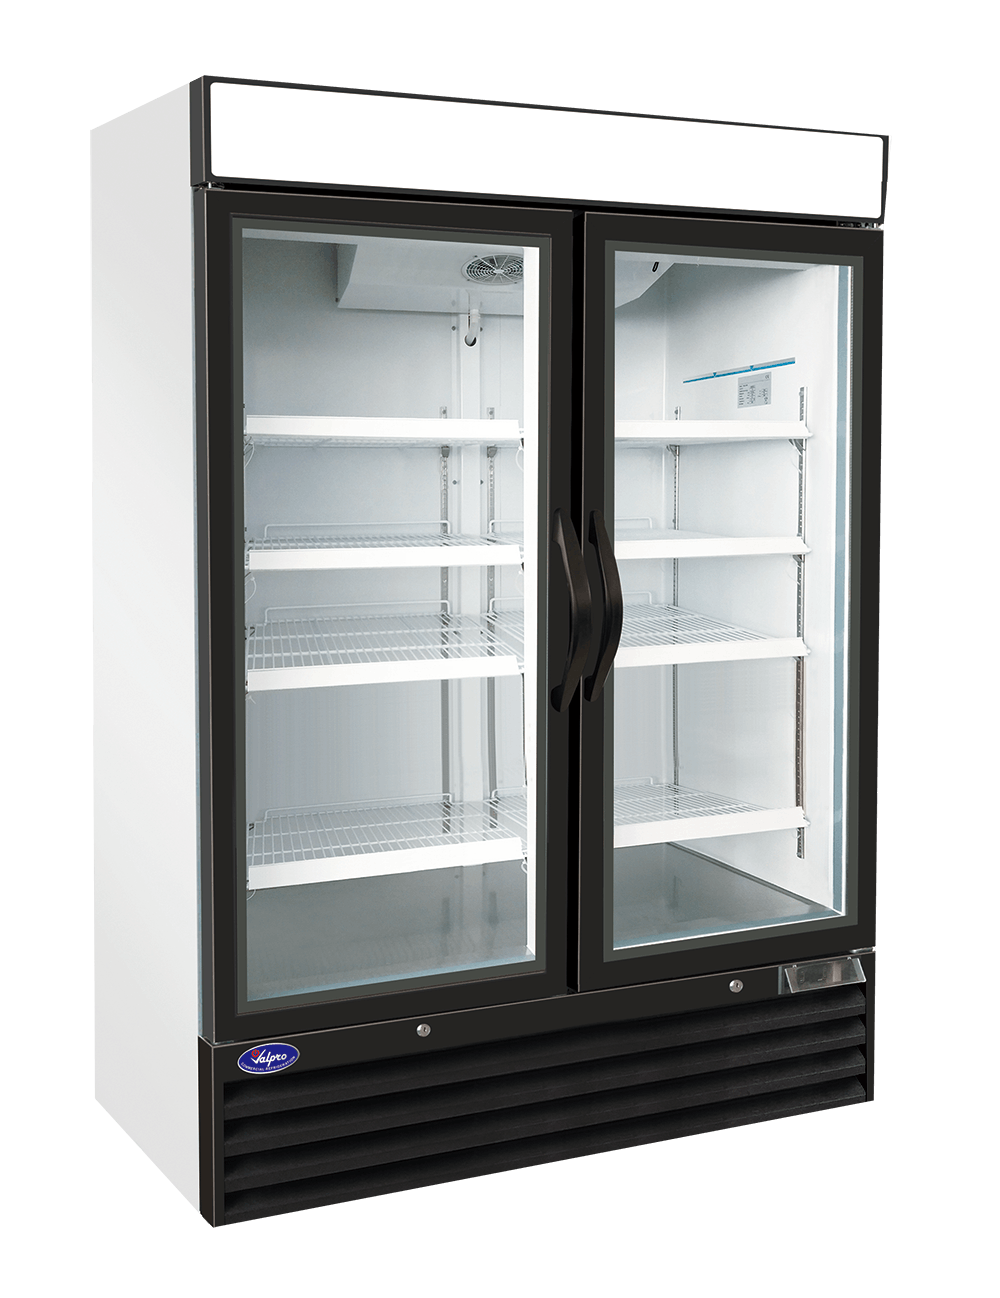 Valpro VP2R-48 - Two Swing Glass Door - 48 cu. ft. Refrigerator - sold by WALKINCOOLER WAREHOUSE